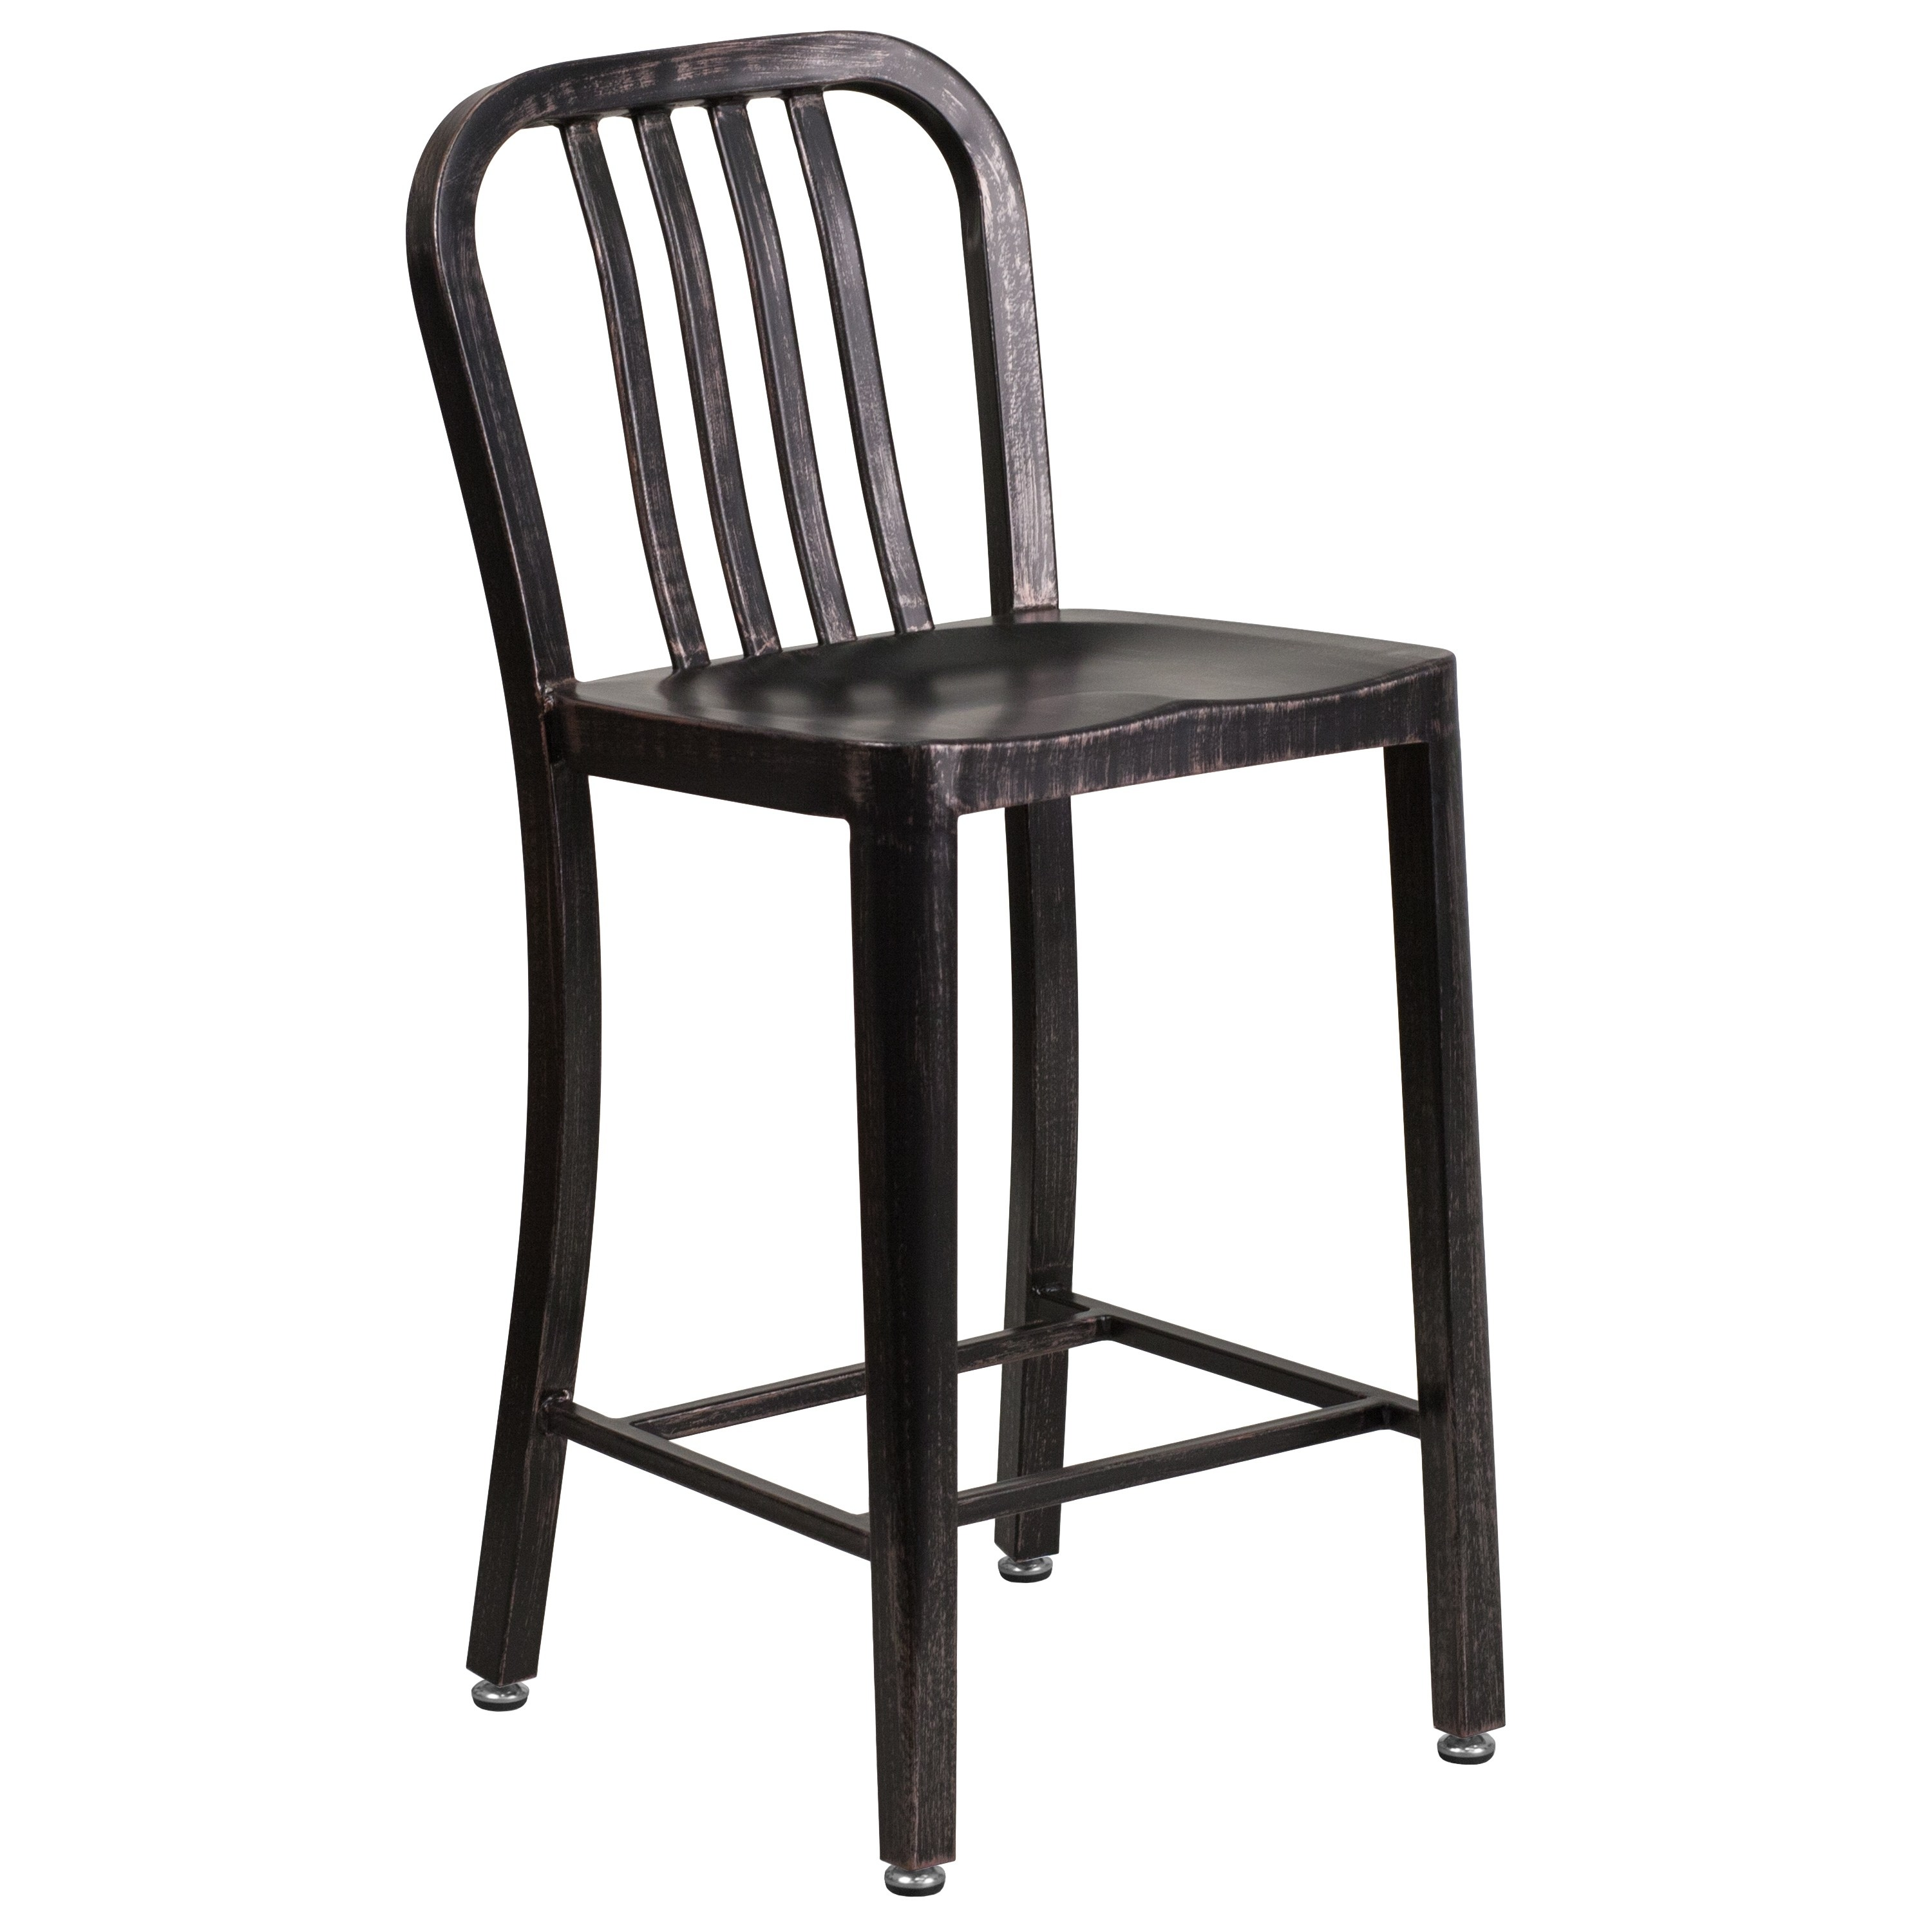 Lancaster Home 24'' High Metal Indoor-Outdoor Counter Height Stool with Vertical Slat Back